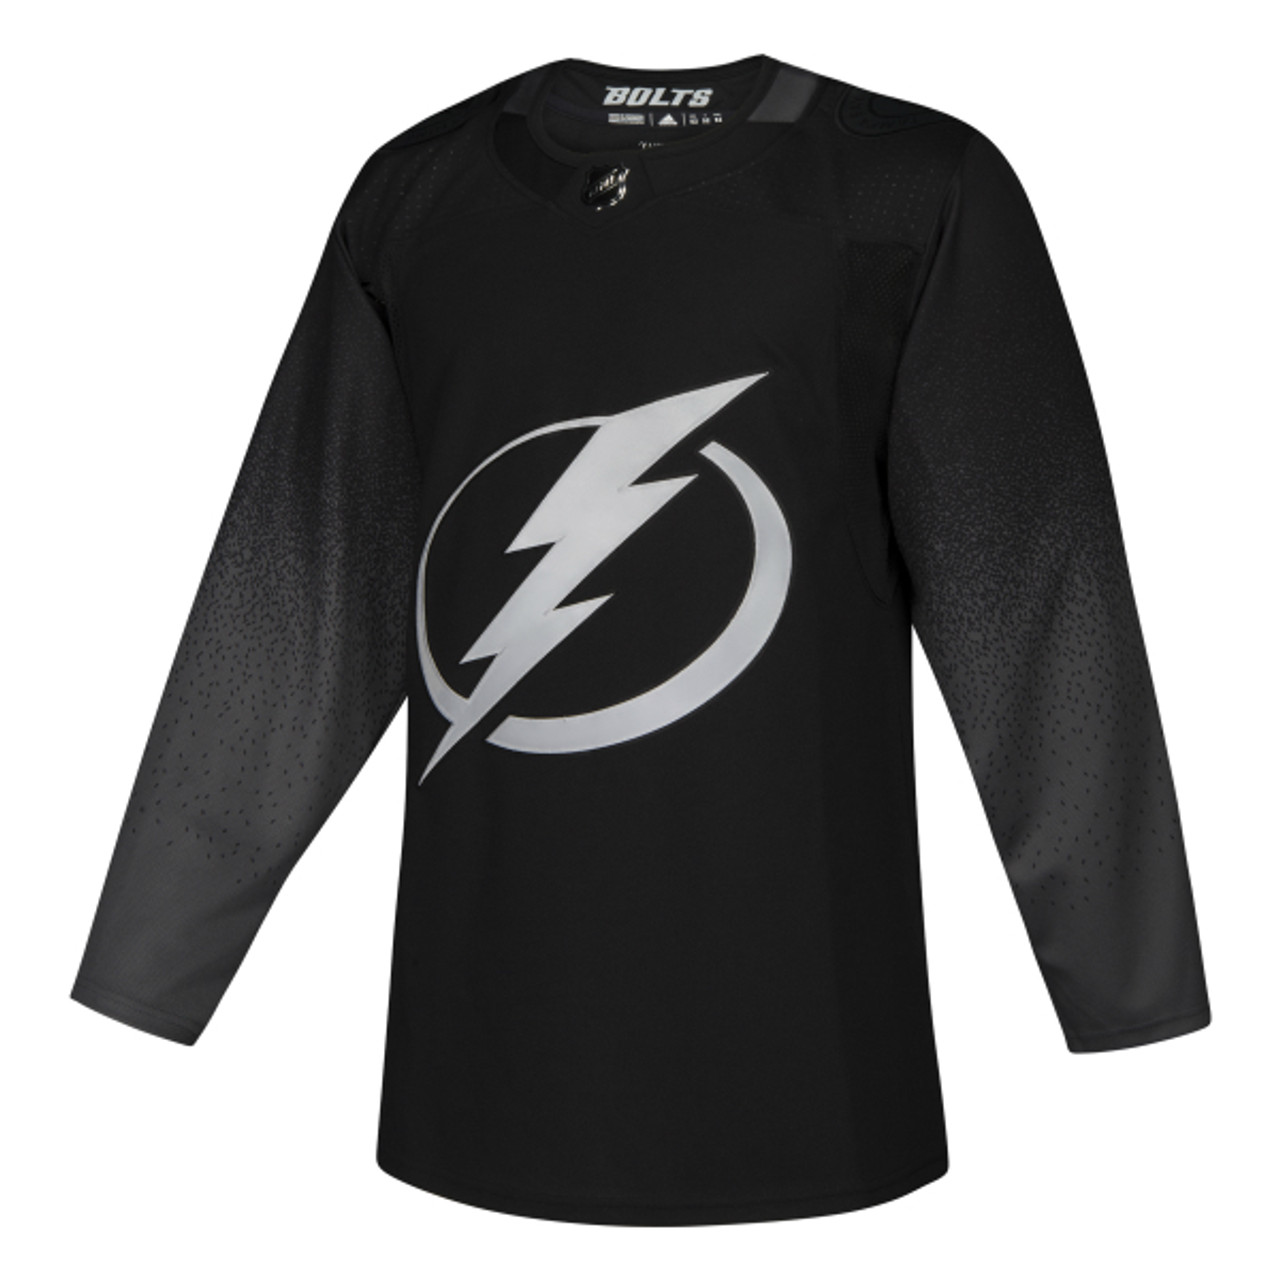 acf96f65 Tampa Bay Lightning adidas ADIZERO Authentic Third Jersey - Tampa ...